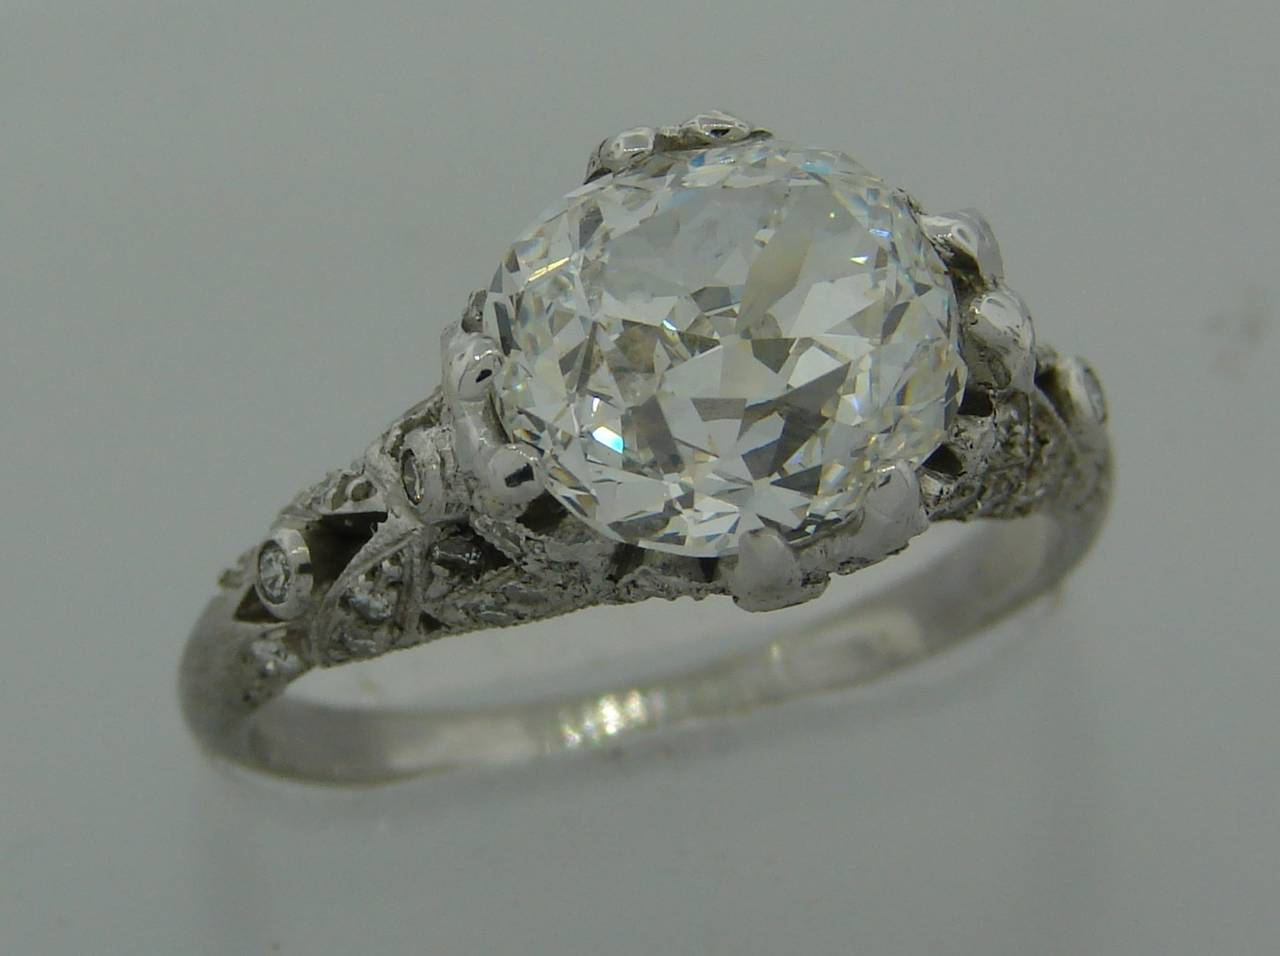 3.02 Carat GIA Cert Cushion Cut Diamond Platinum Engagement Ring circa 1920s In Excellent Condition For Sale In Beverly Hills, CA